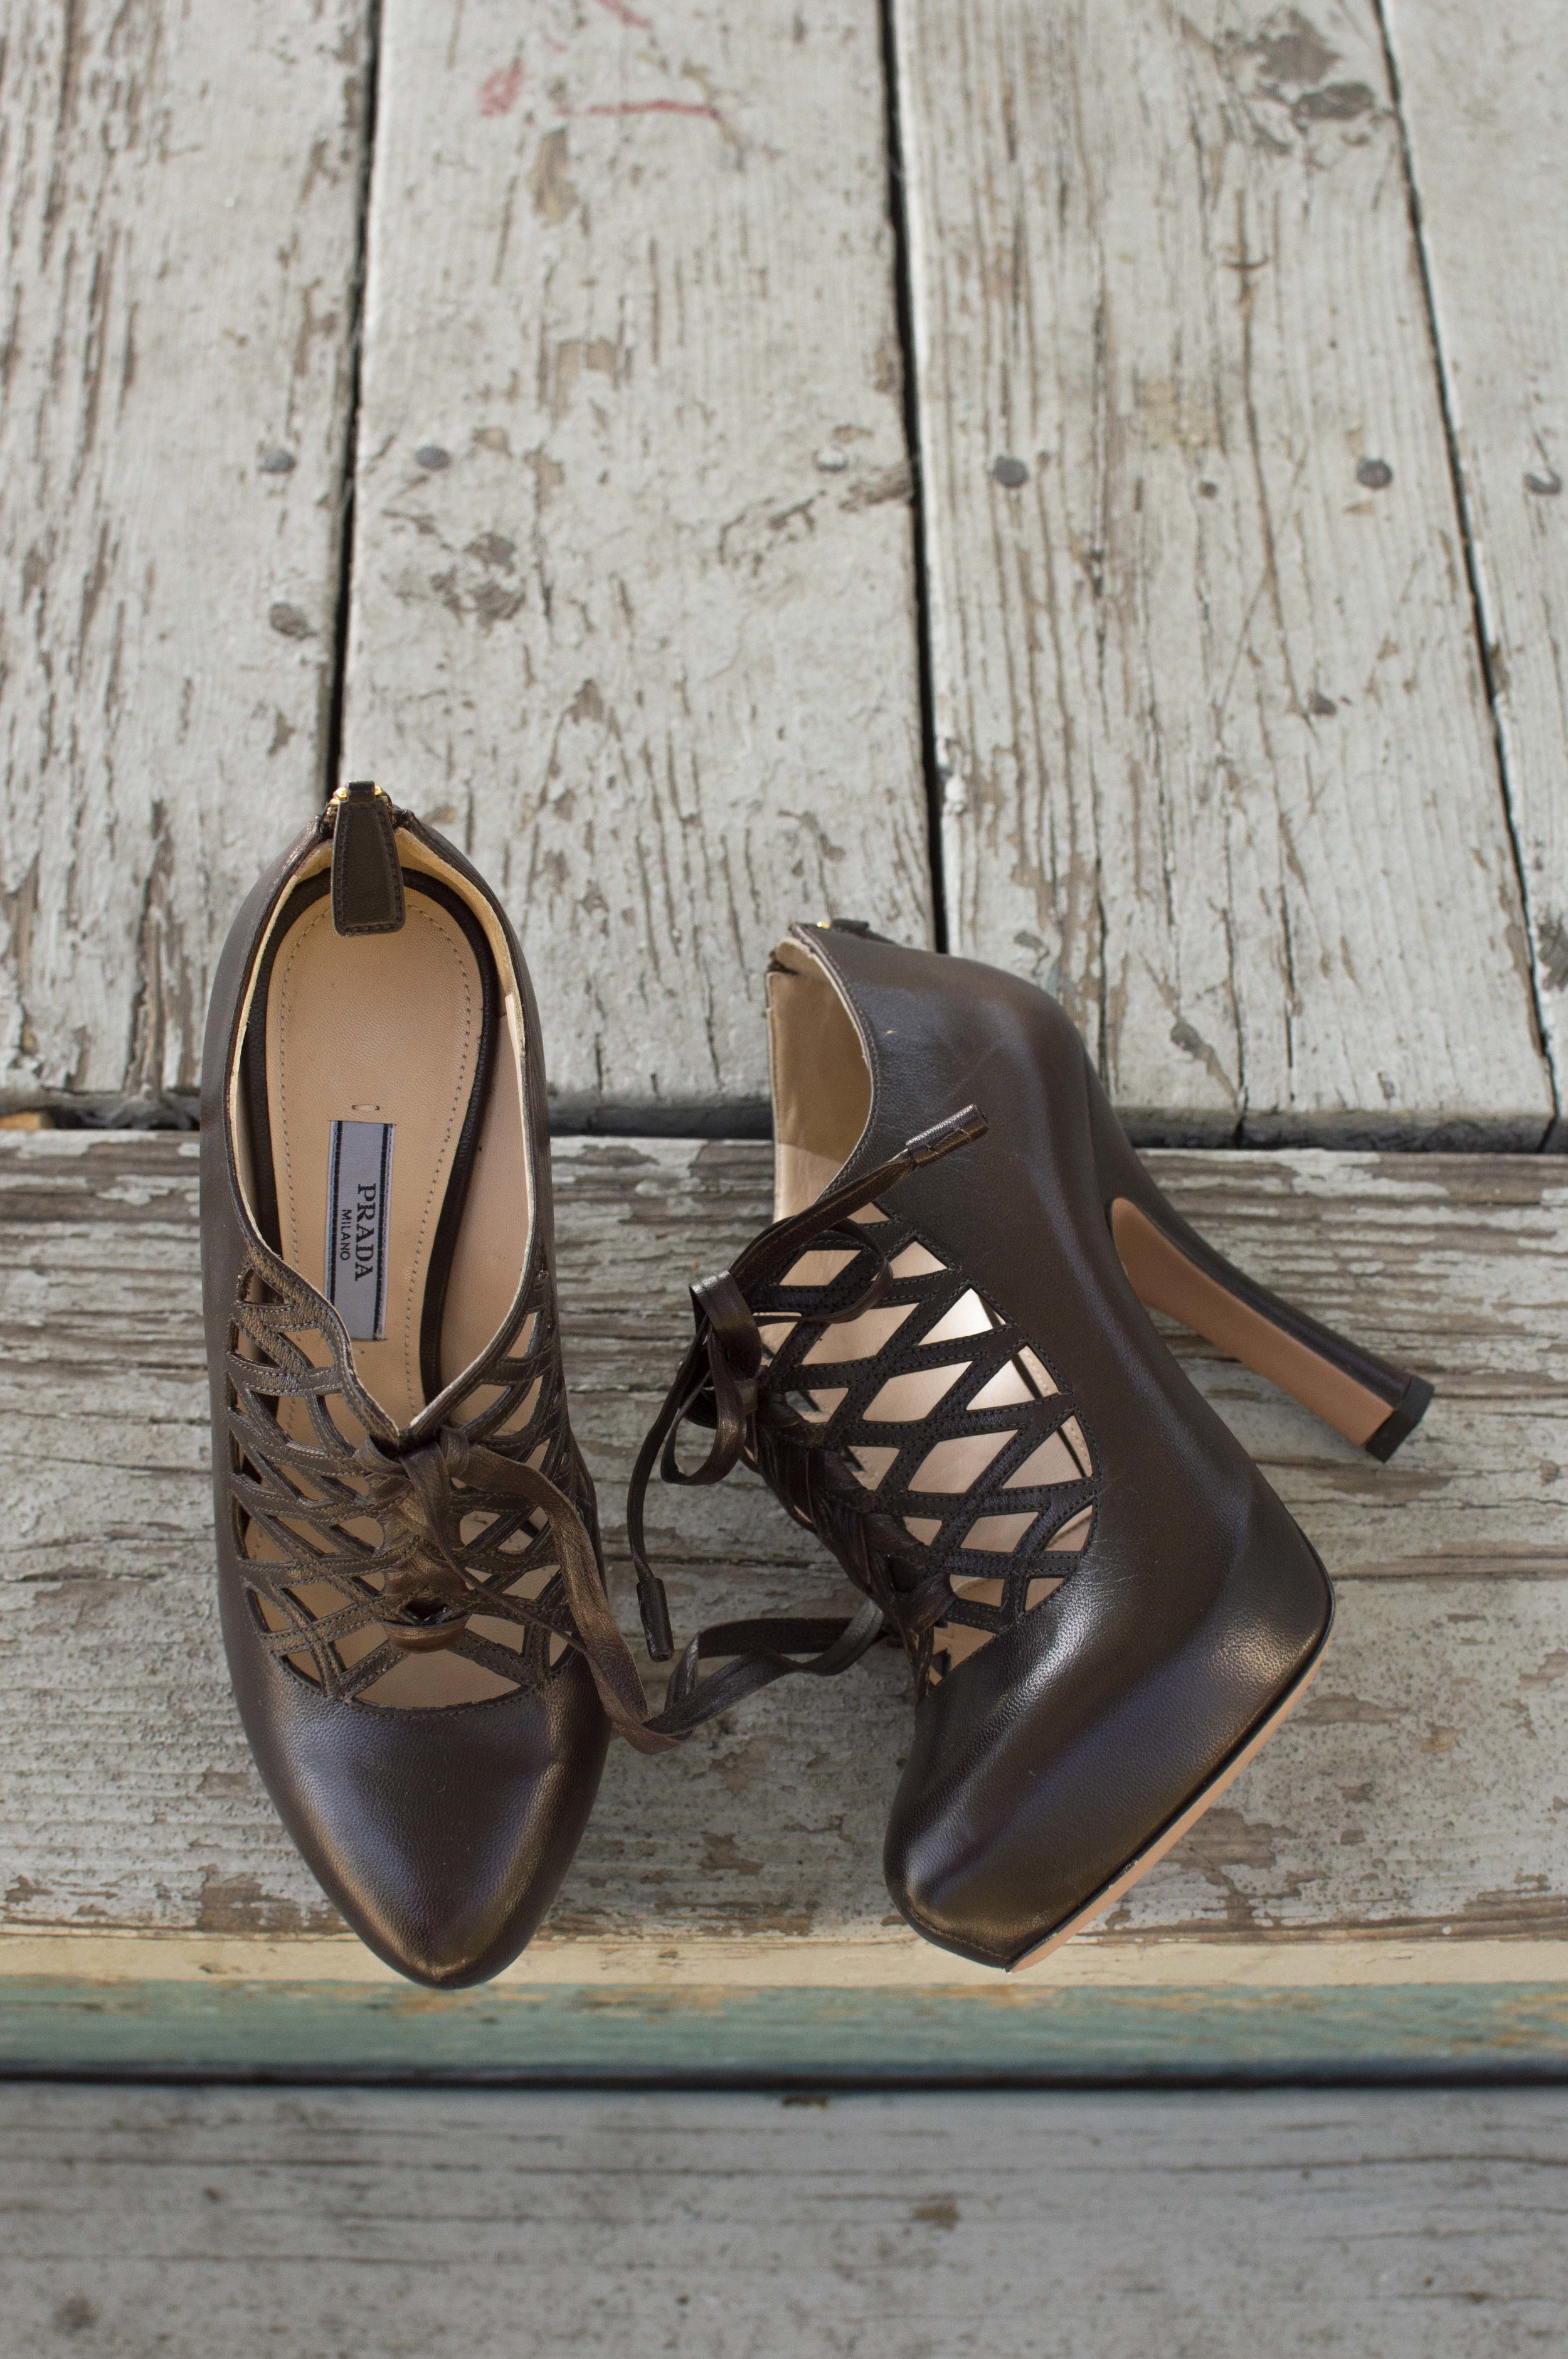 Boots - $348 / Size 36